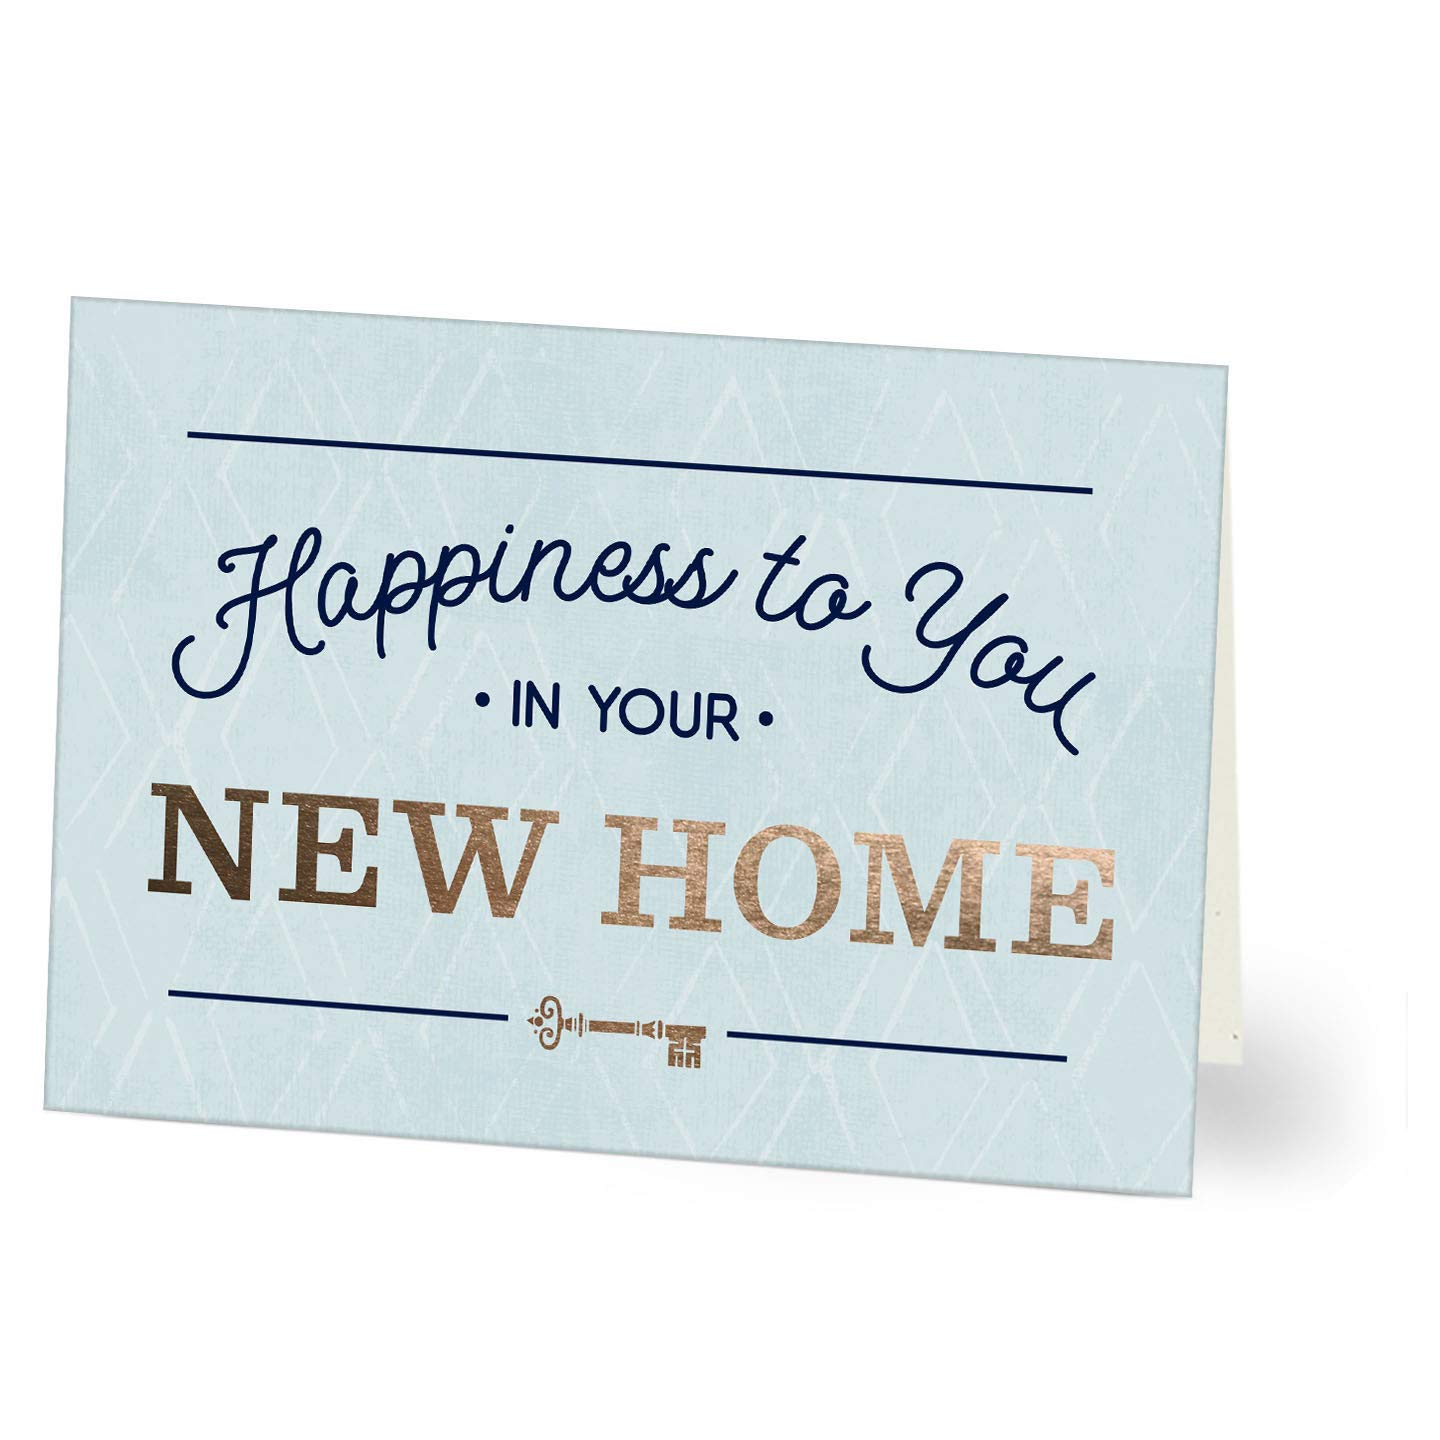 Amazon Com Hallmark Business Congrats New Home Cards For Realtors Real Estate Agents Insurance Agents And Bankers Happiness To You Pack Of 25 Greeting Cards Office Products